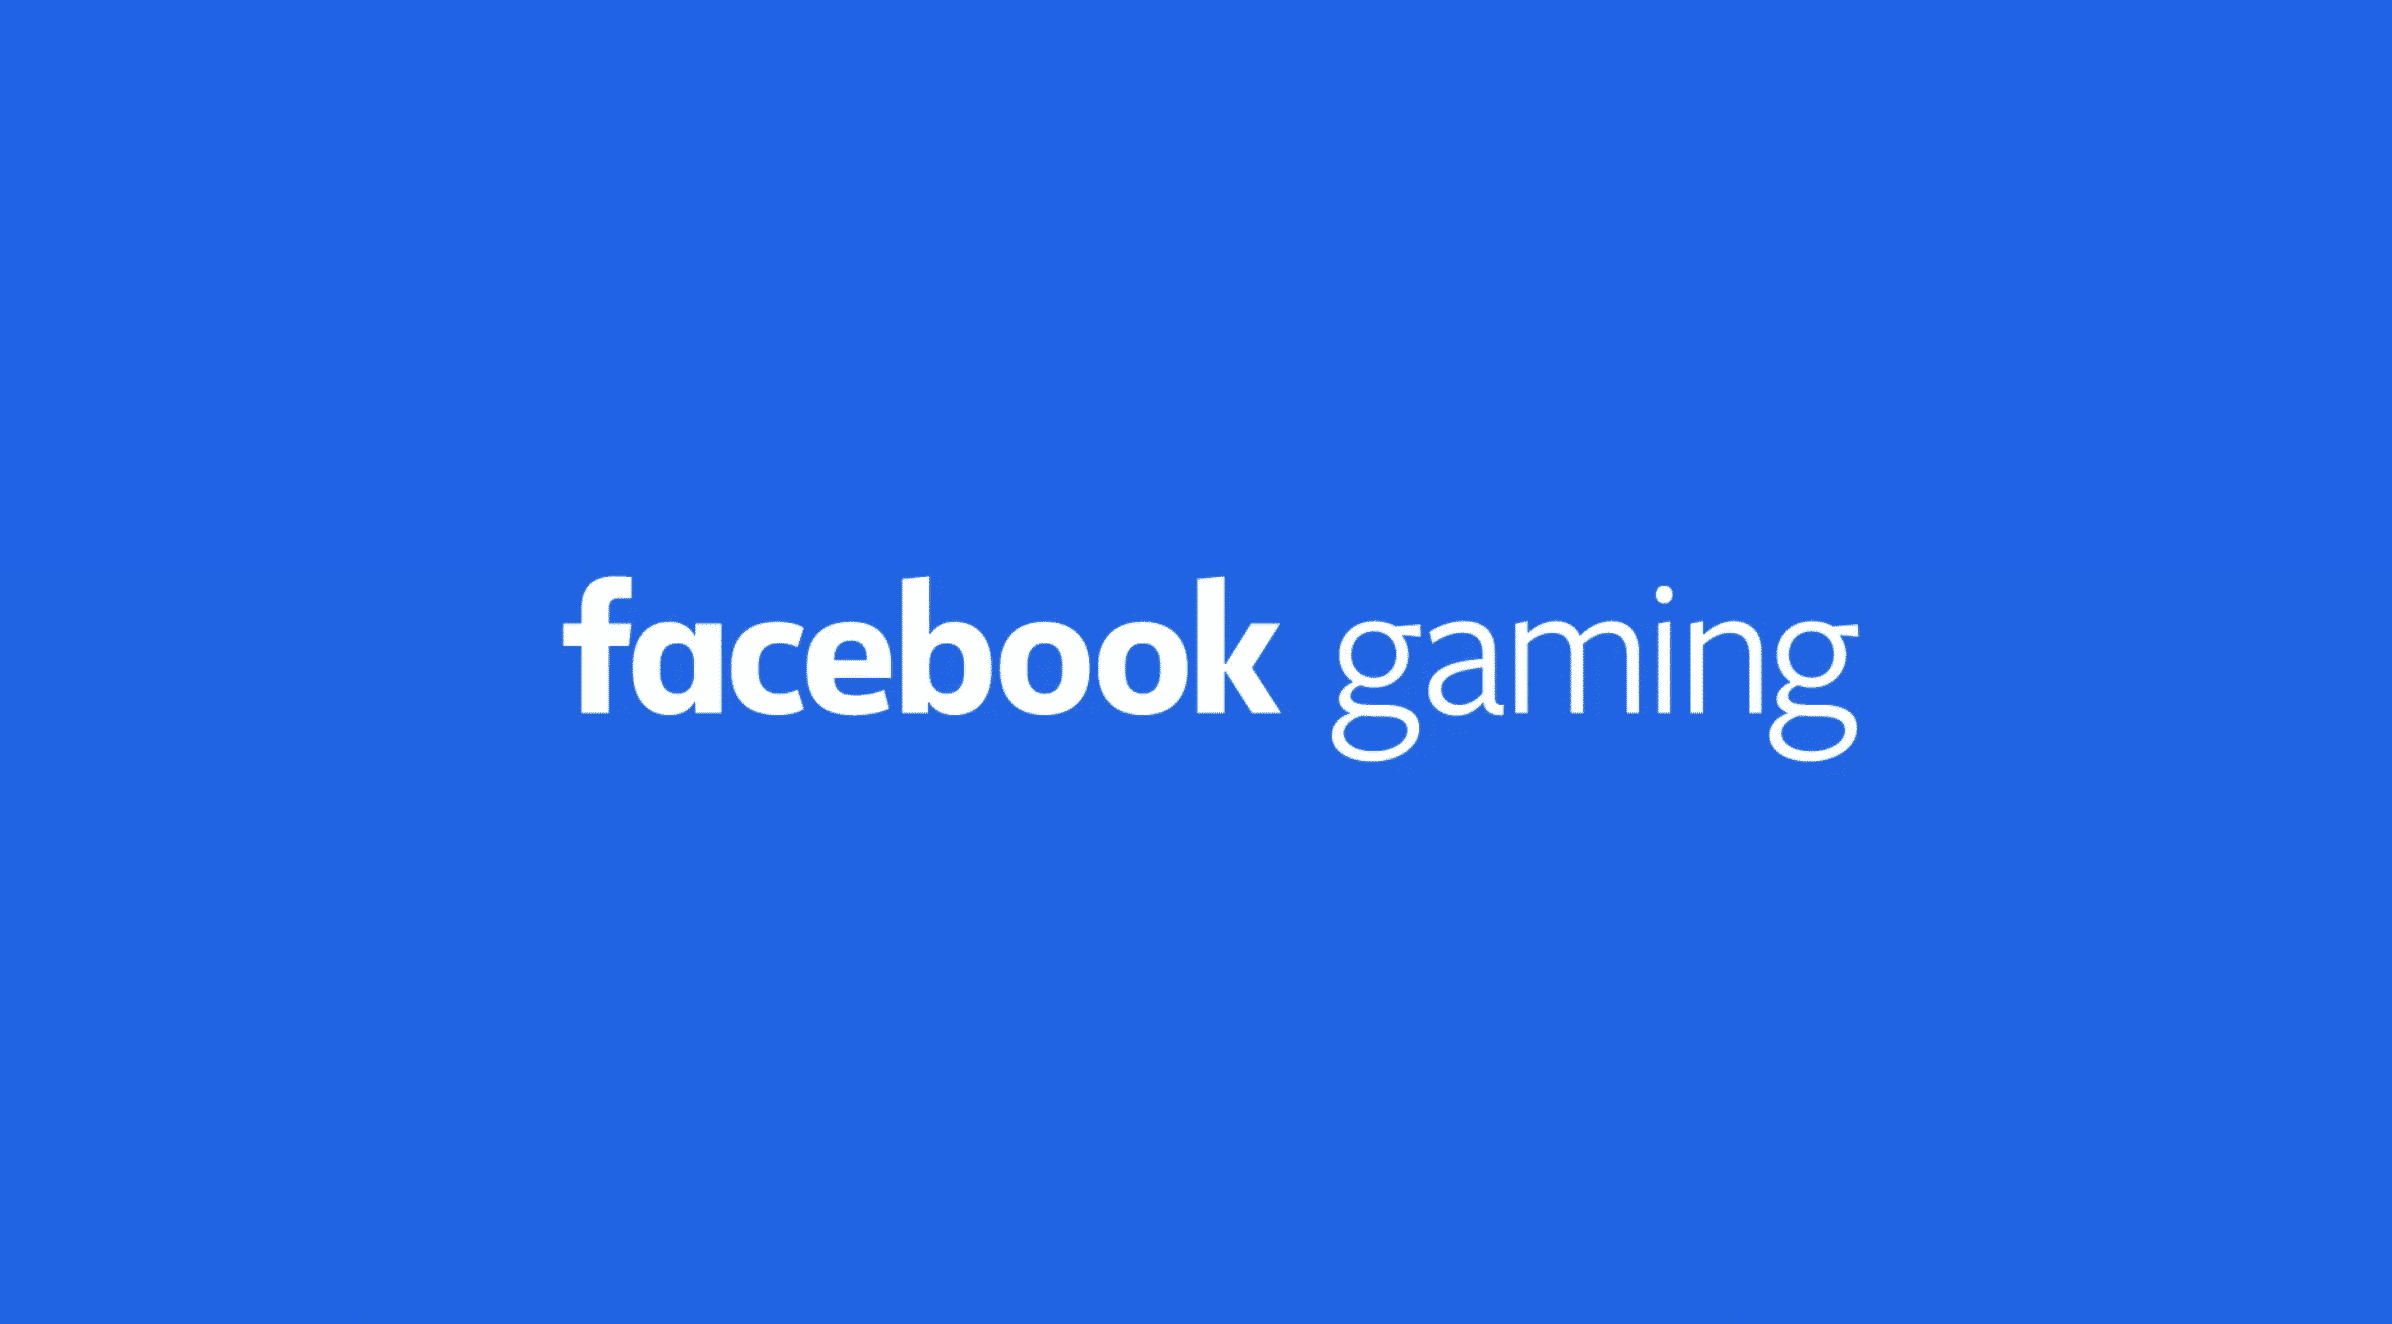 Facebook lashes out at Apple over App Store policies, releases inferior iOS version of Facebook Gaming APP